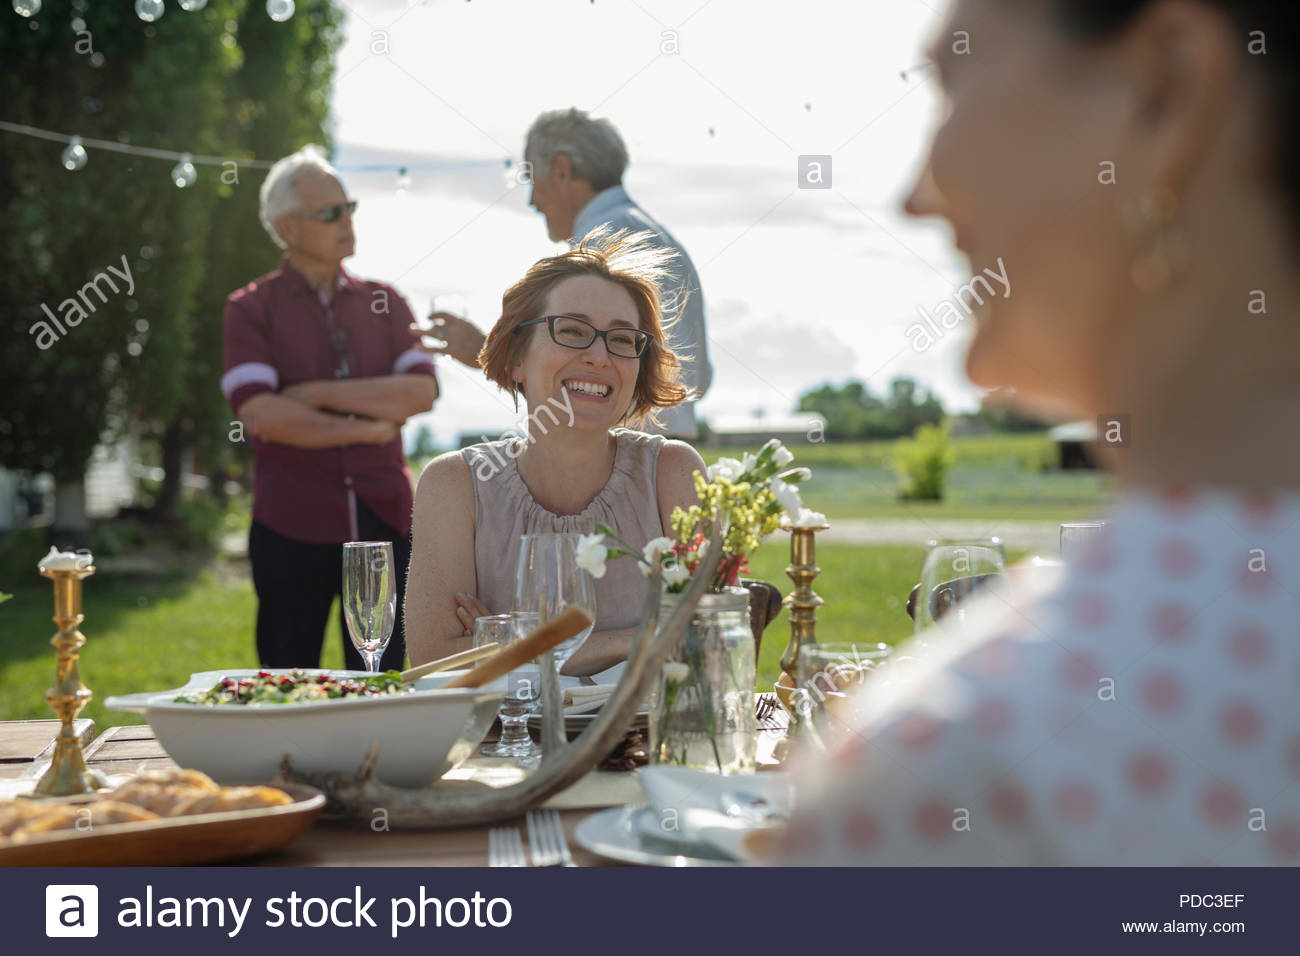 Smiling women enjoying lunch at sunny patio table - Stock Image